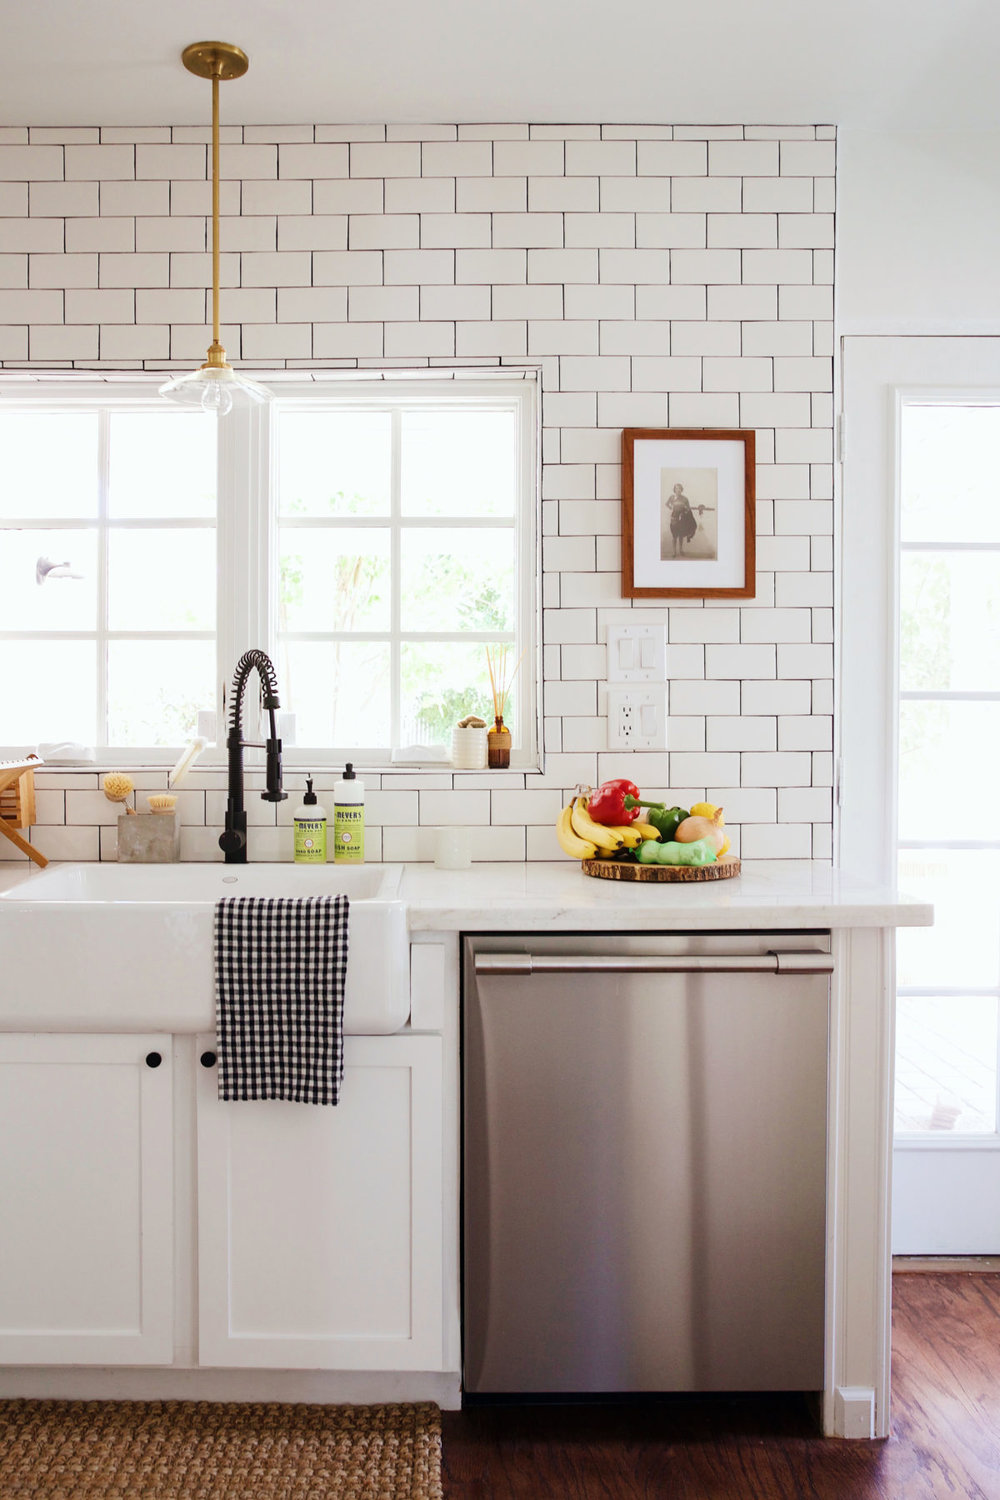 New-Darlings-Kitchen-Makeover-01-1-1200x1800.jpg